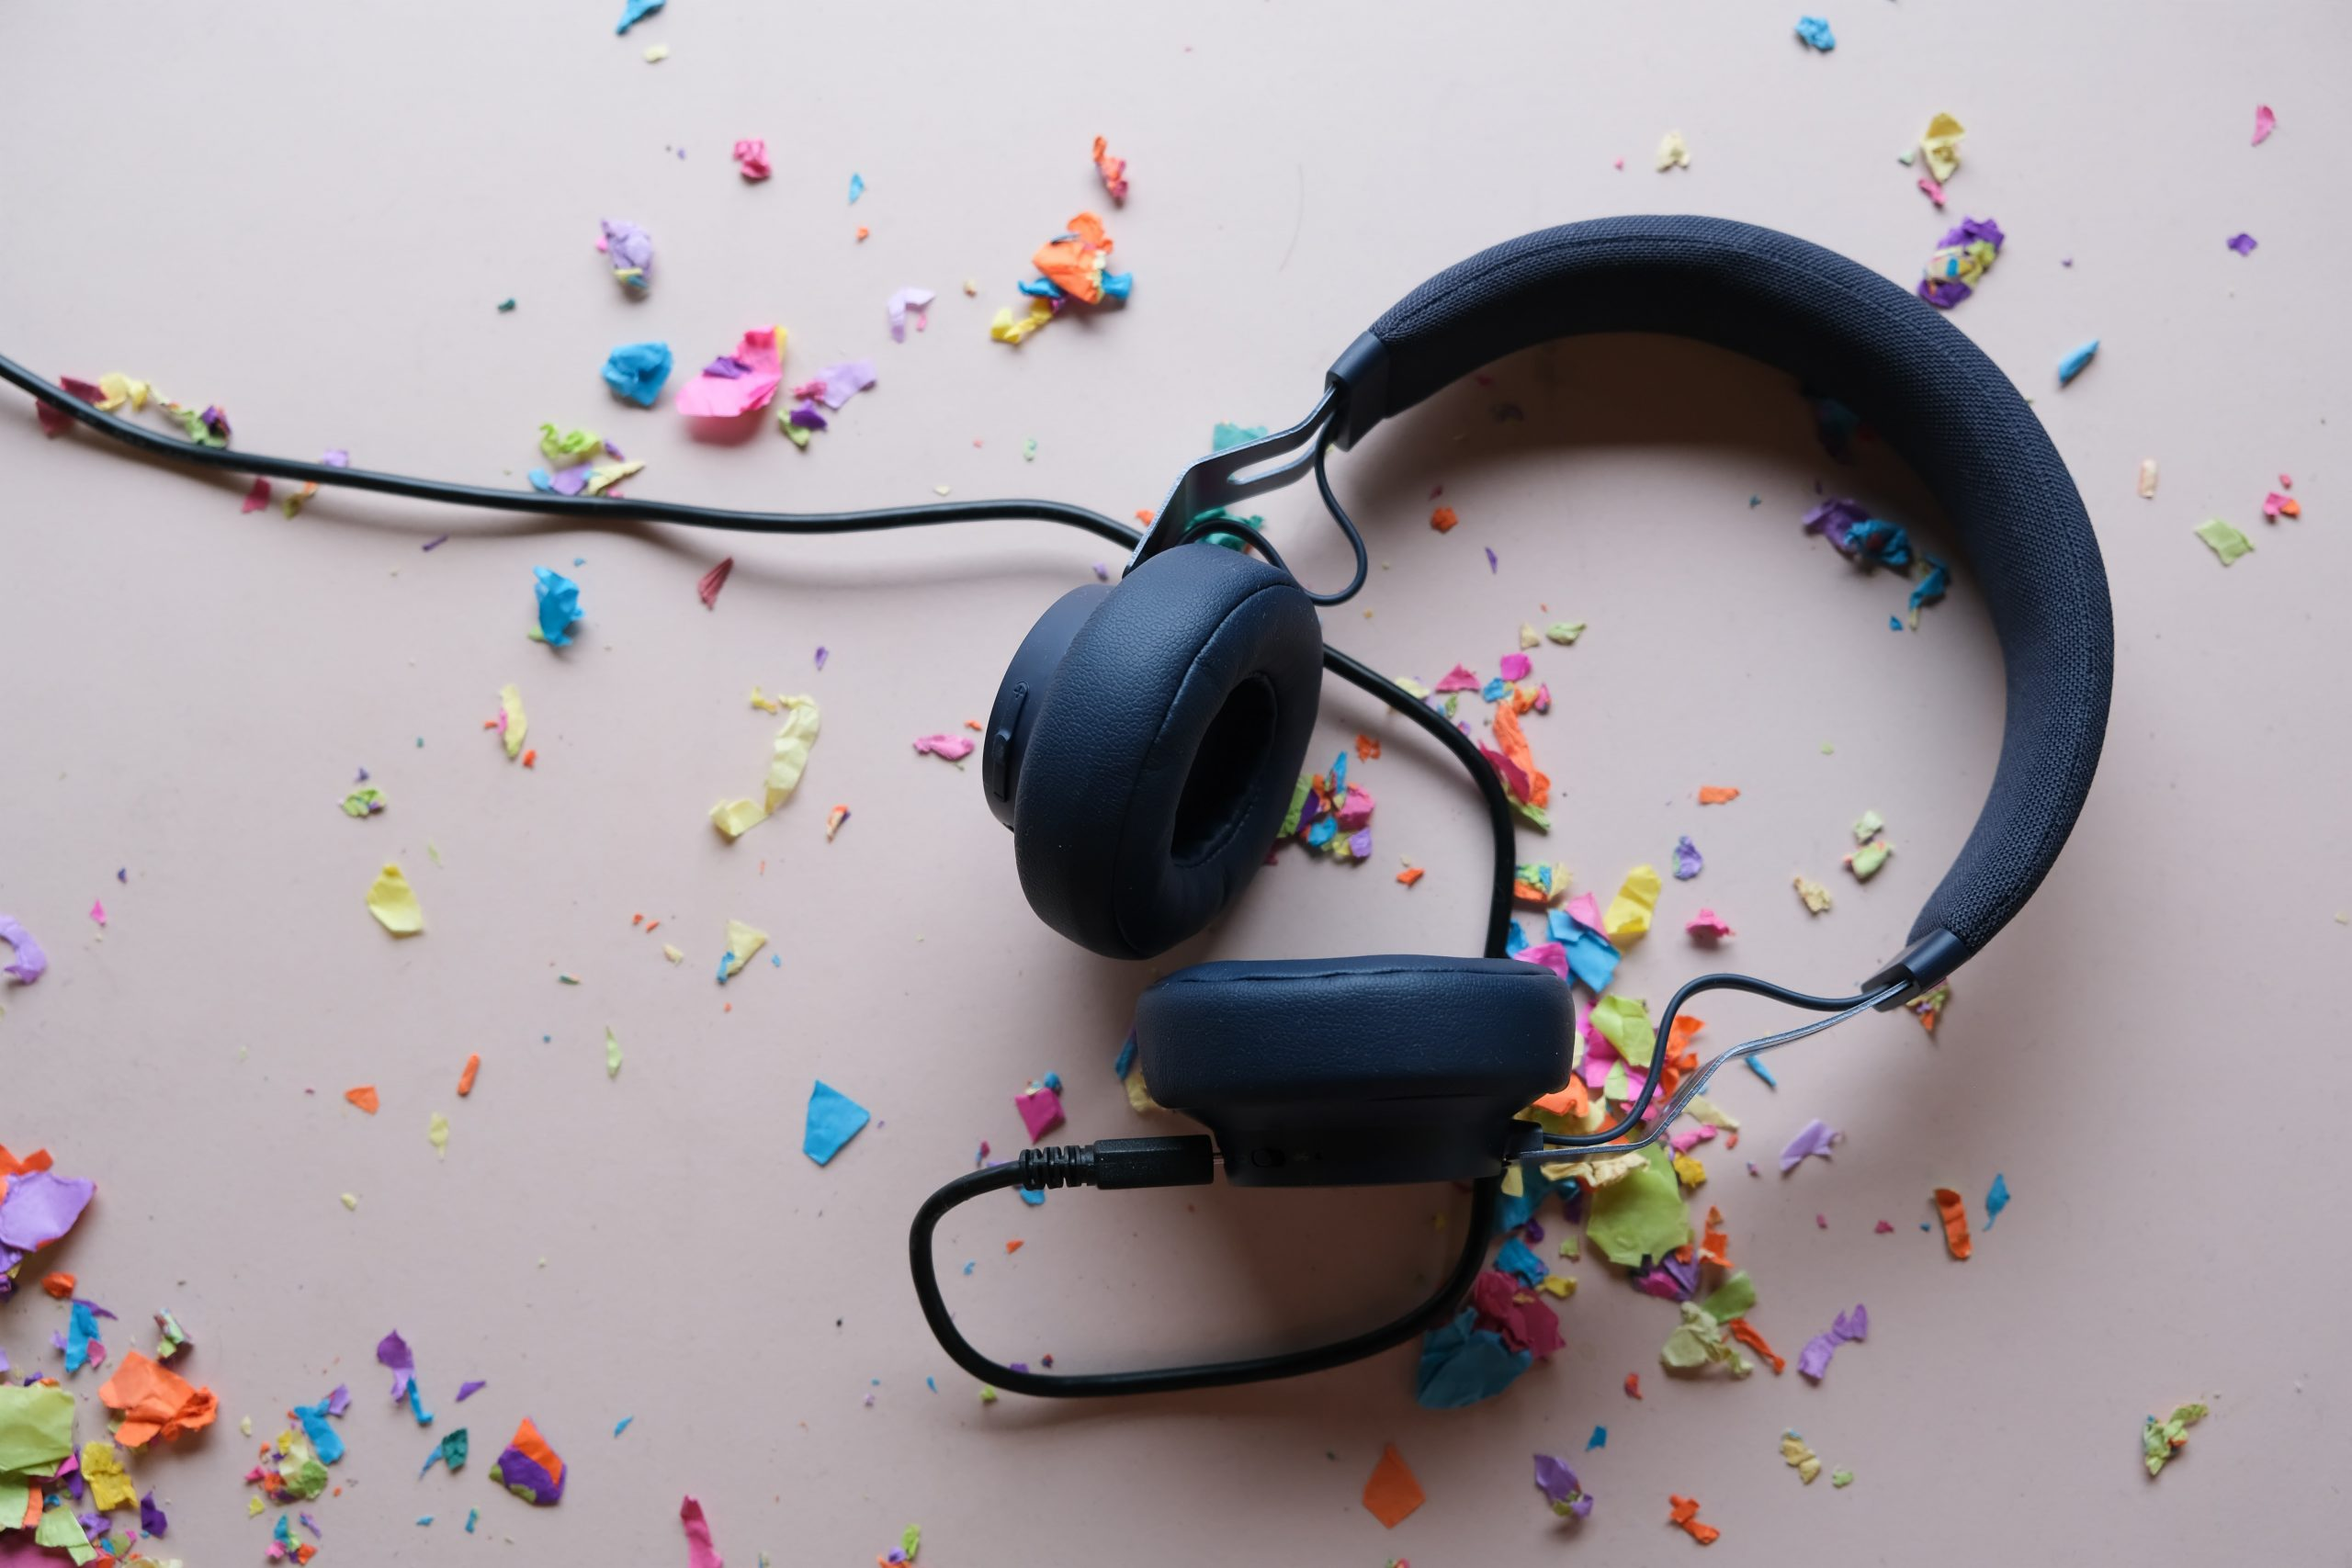 black headphones lying in scattered colourful confetti